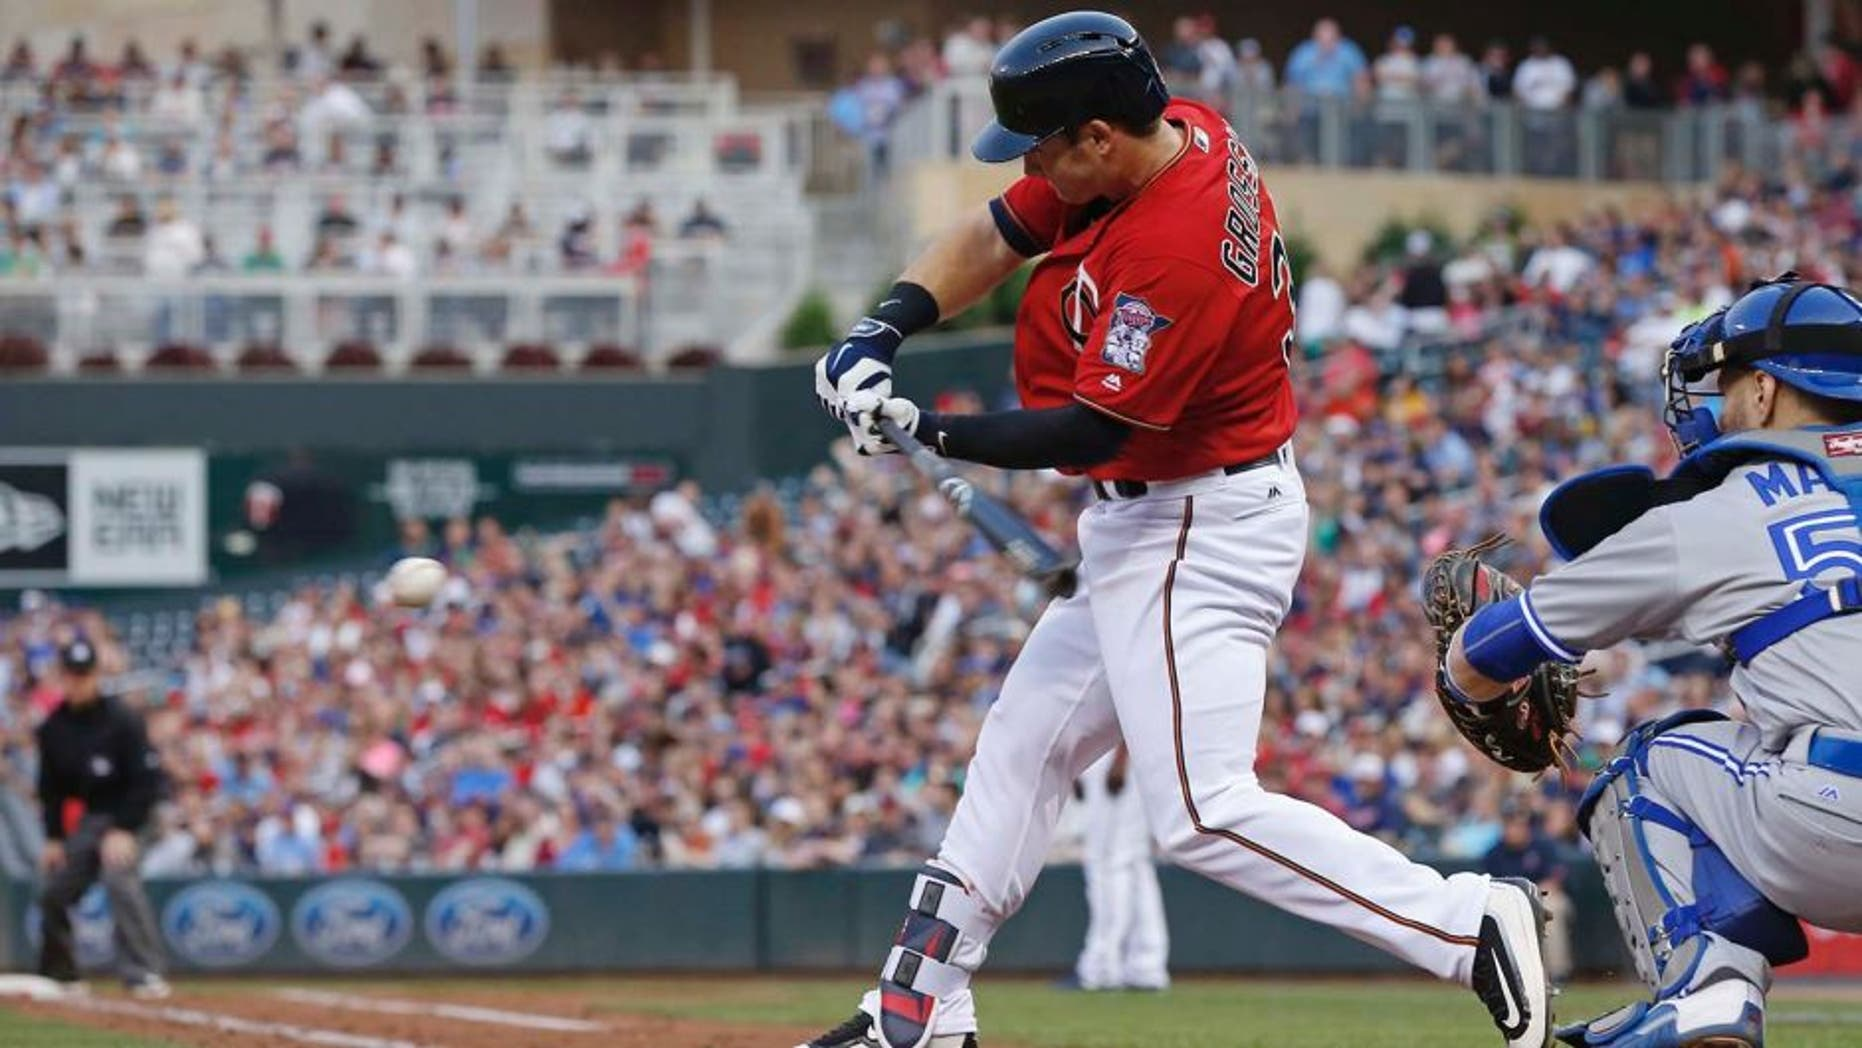 Minnesota Twins' Robbie Grossman hits an RBI double off Toronto Blue Jays pitcher Aaron Sanchez in the second inning of a baseball game Friday, May 20, 2016, in Minneapolis. (AP Photo/Jim Mone)